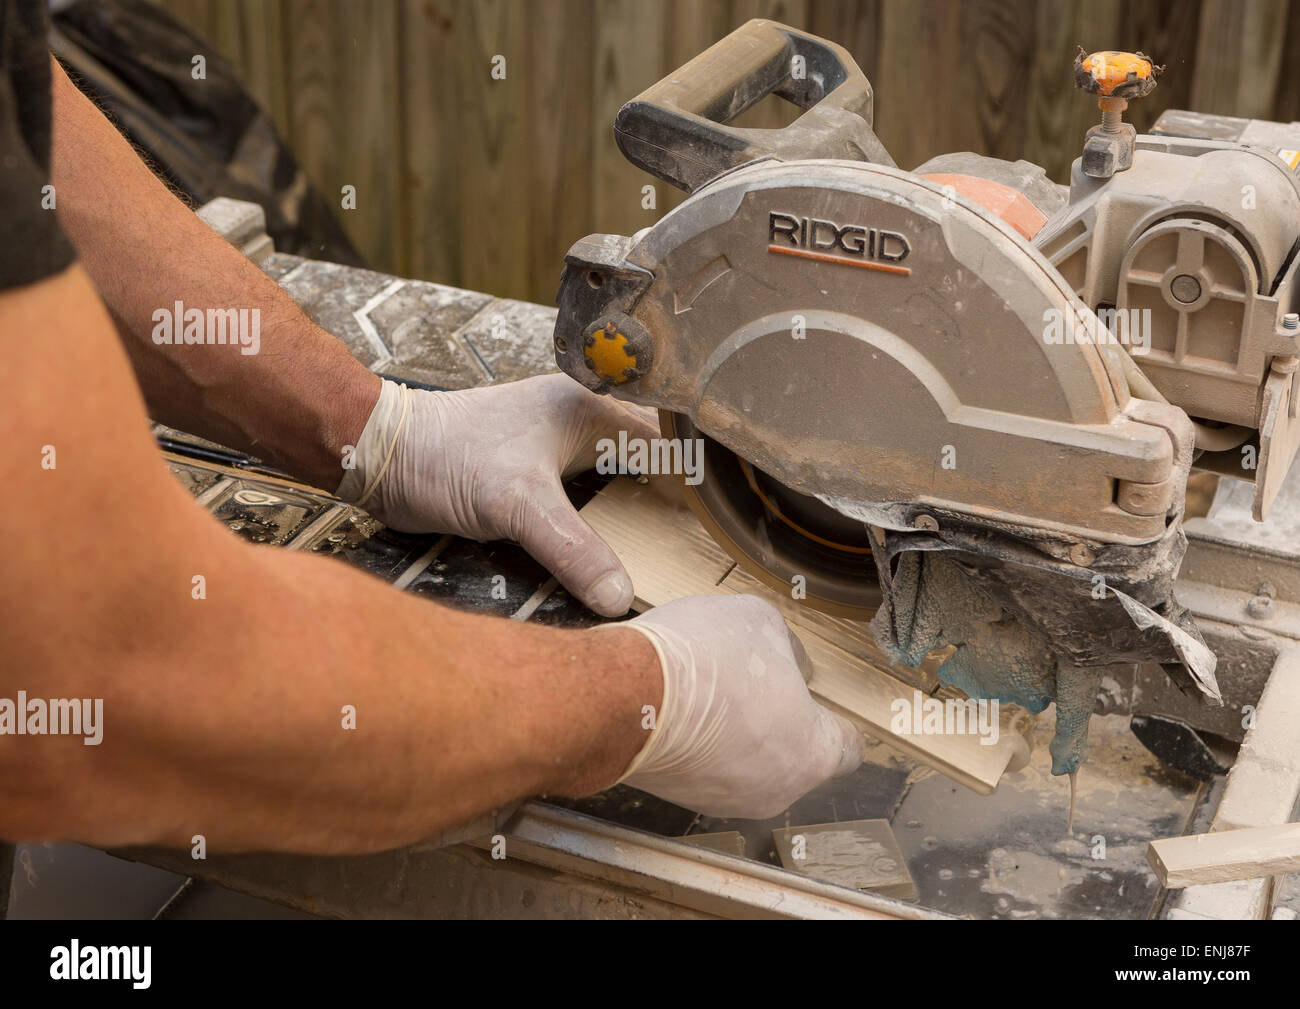 ARLINGTON, VIRGINIA, USA - Worker wearing latex gloves cuts ceramic tiles with a wet tile saw. - Stock Image